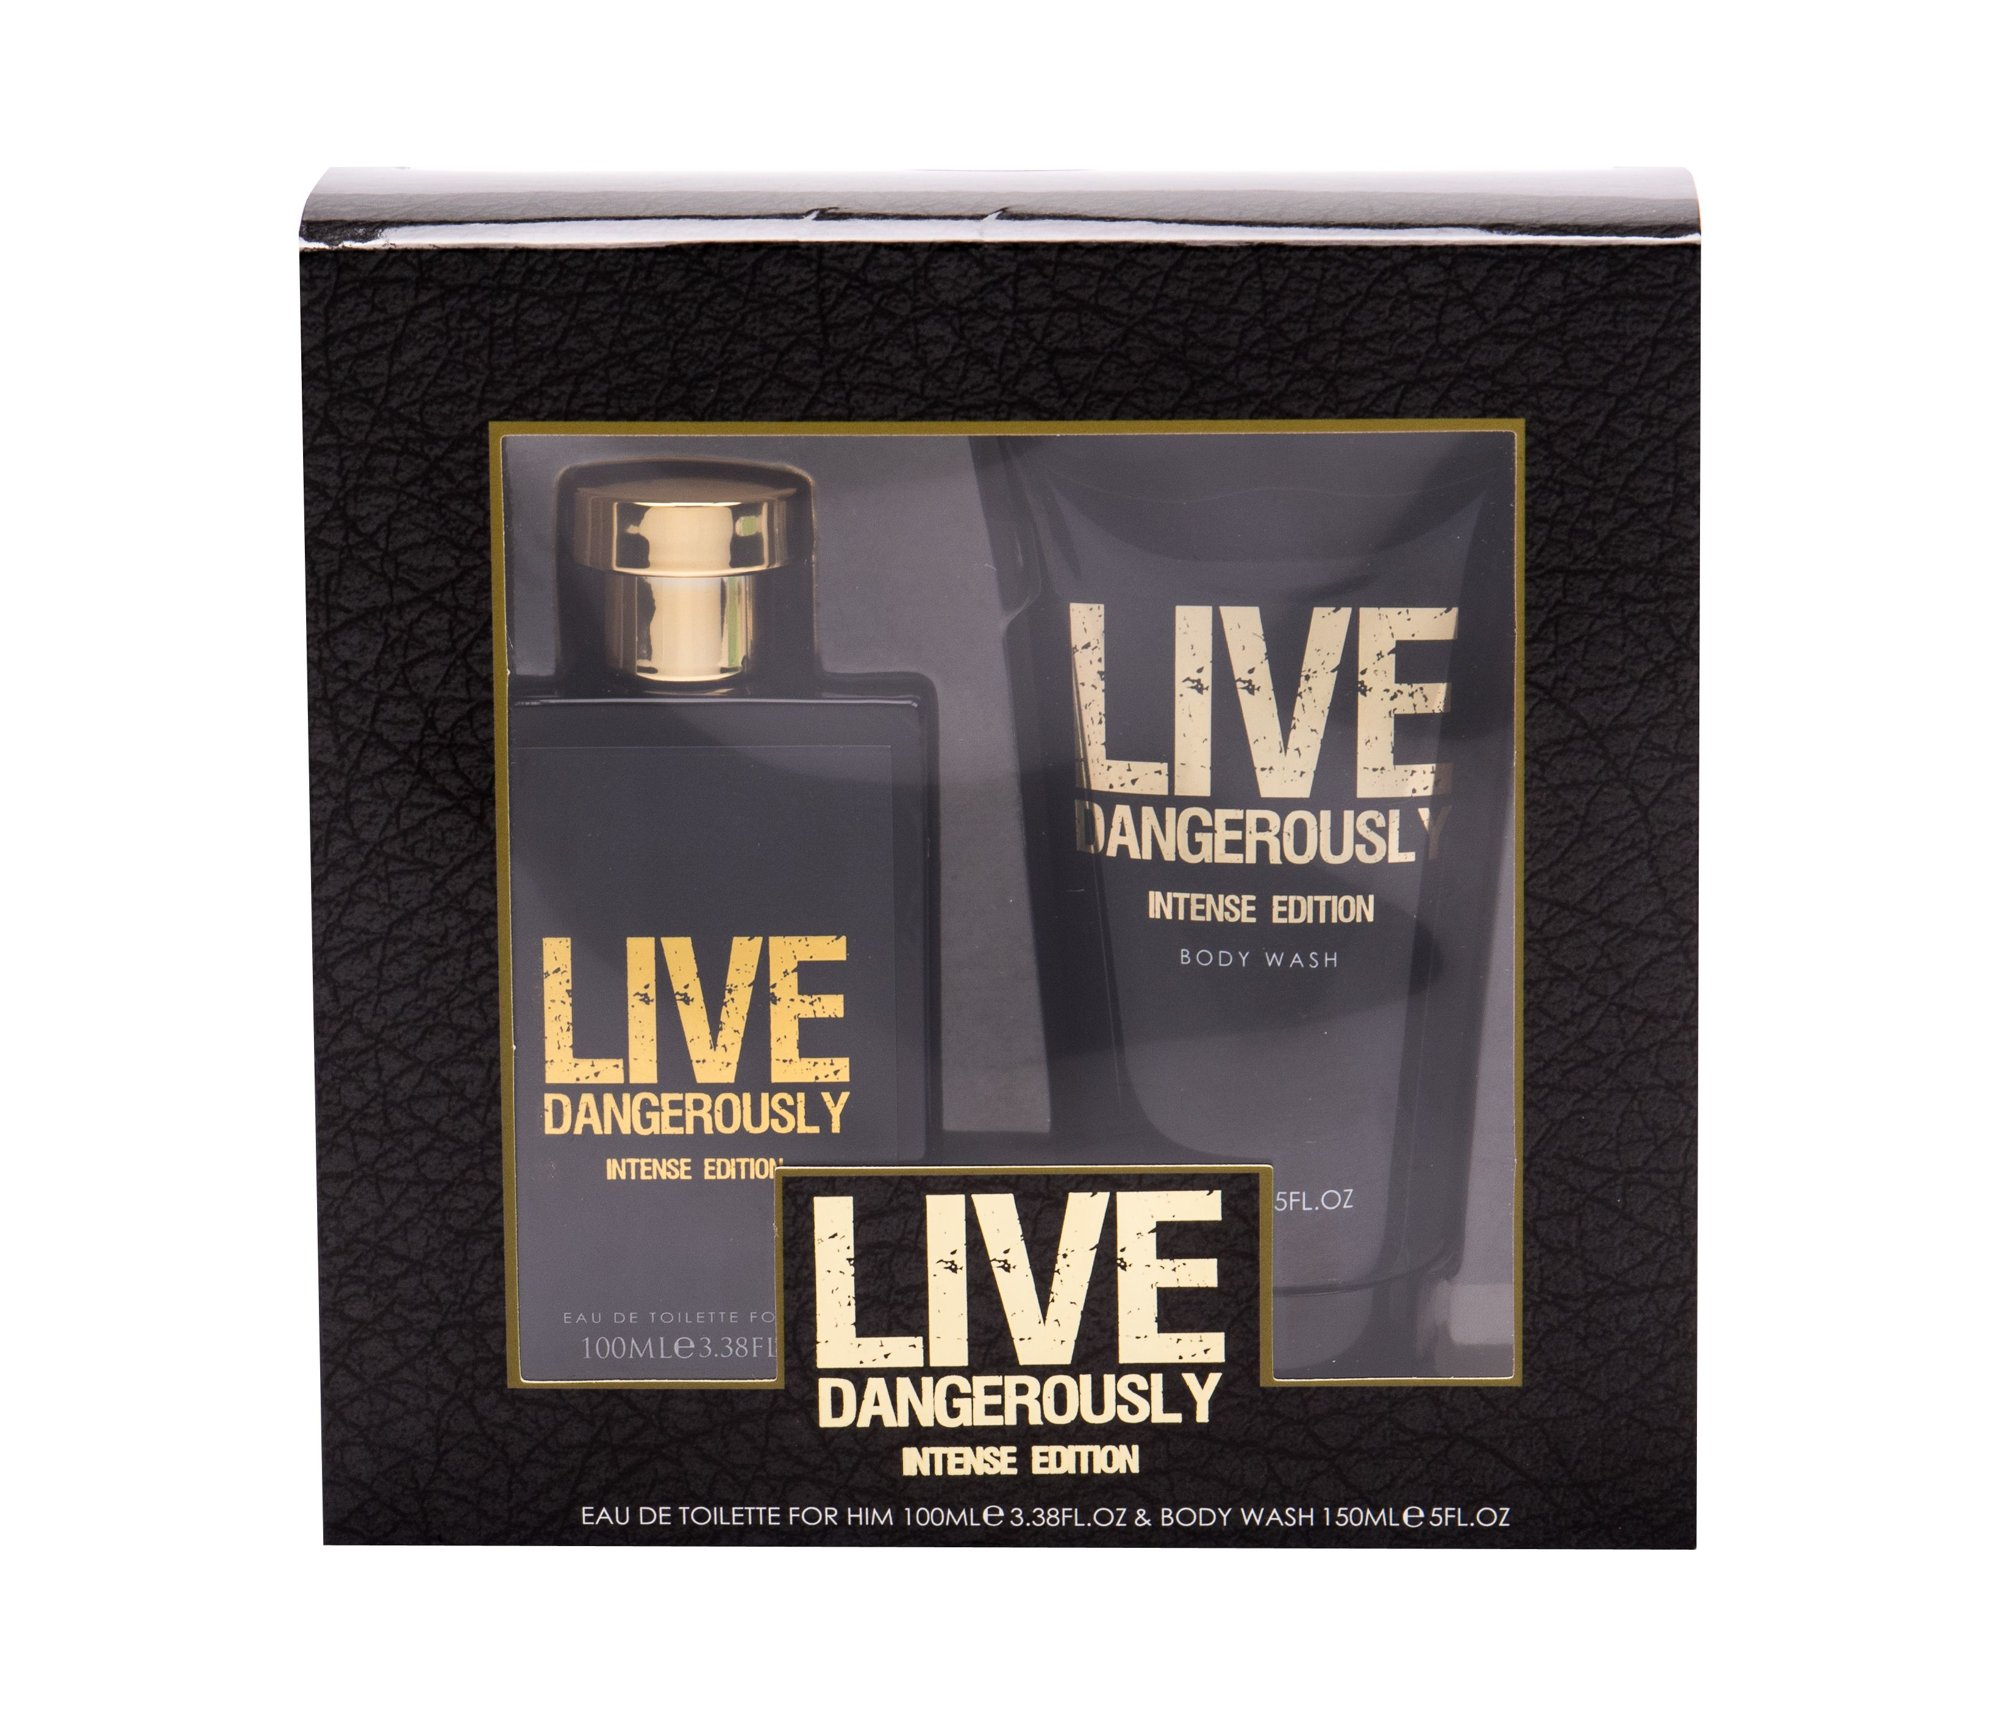 Live Dangerously Intense Edition Eau de Toilette 100ml